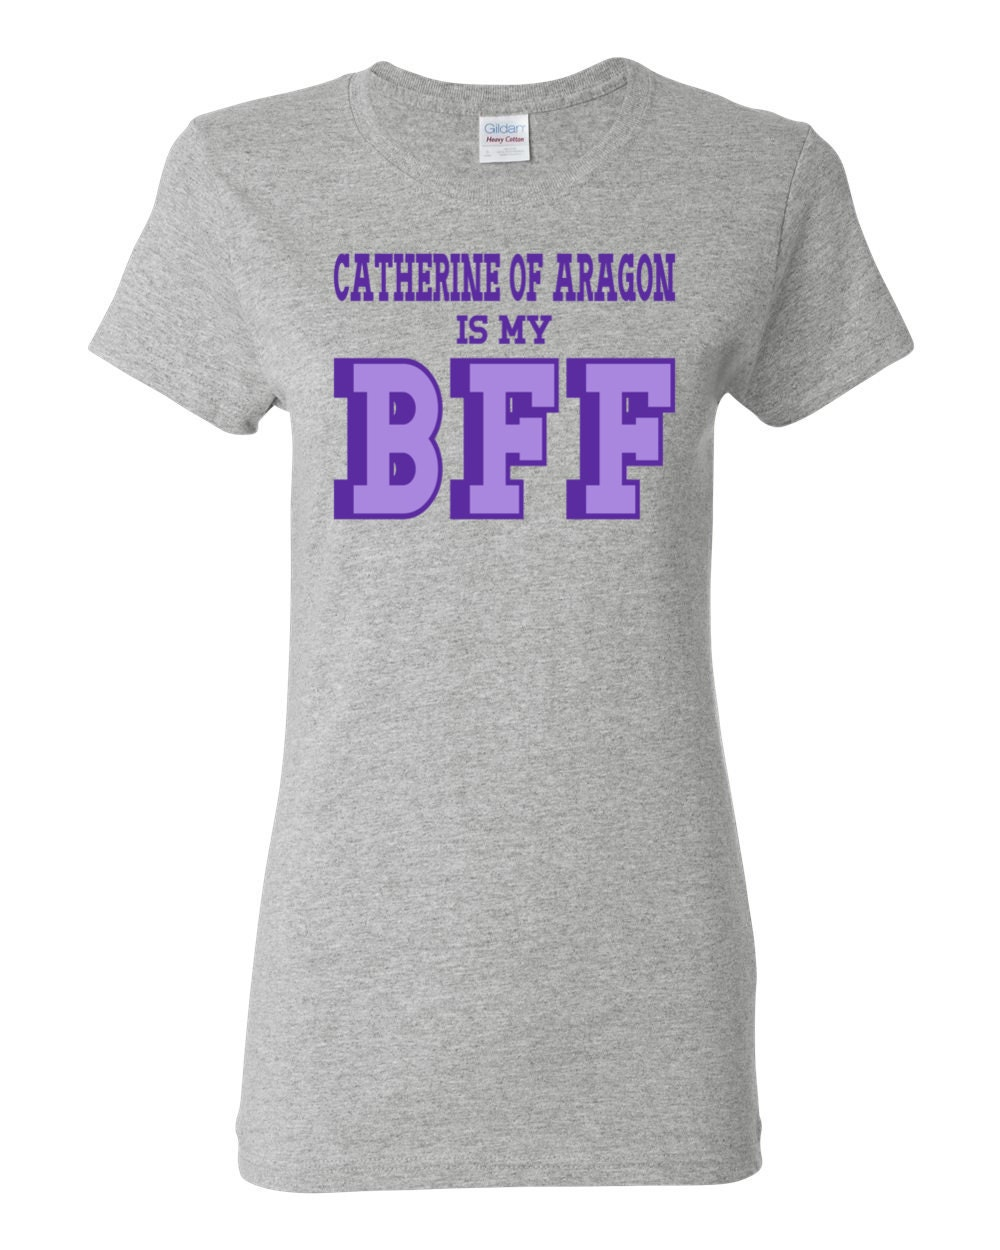 Great Women of History - Catherine of Aragon is my BFF Womens History T-shirt